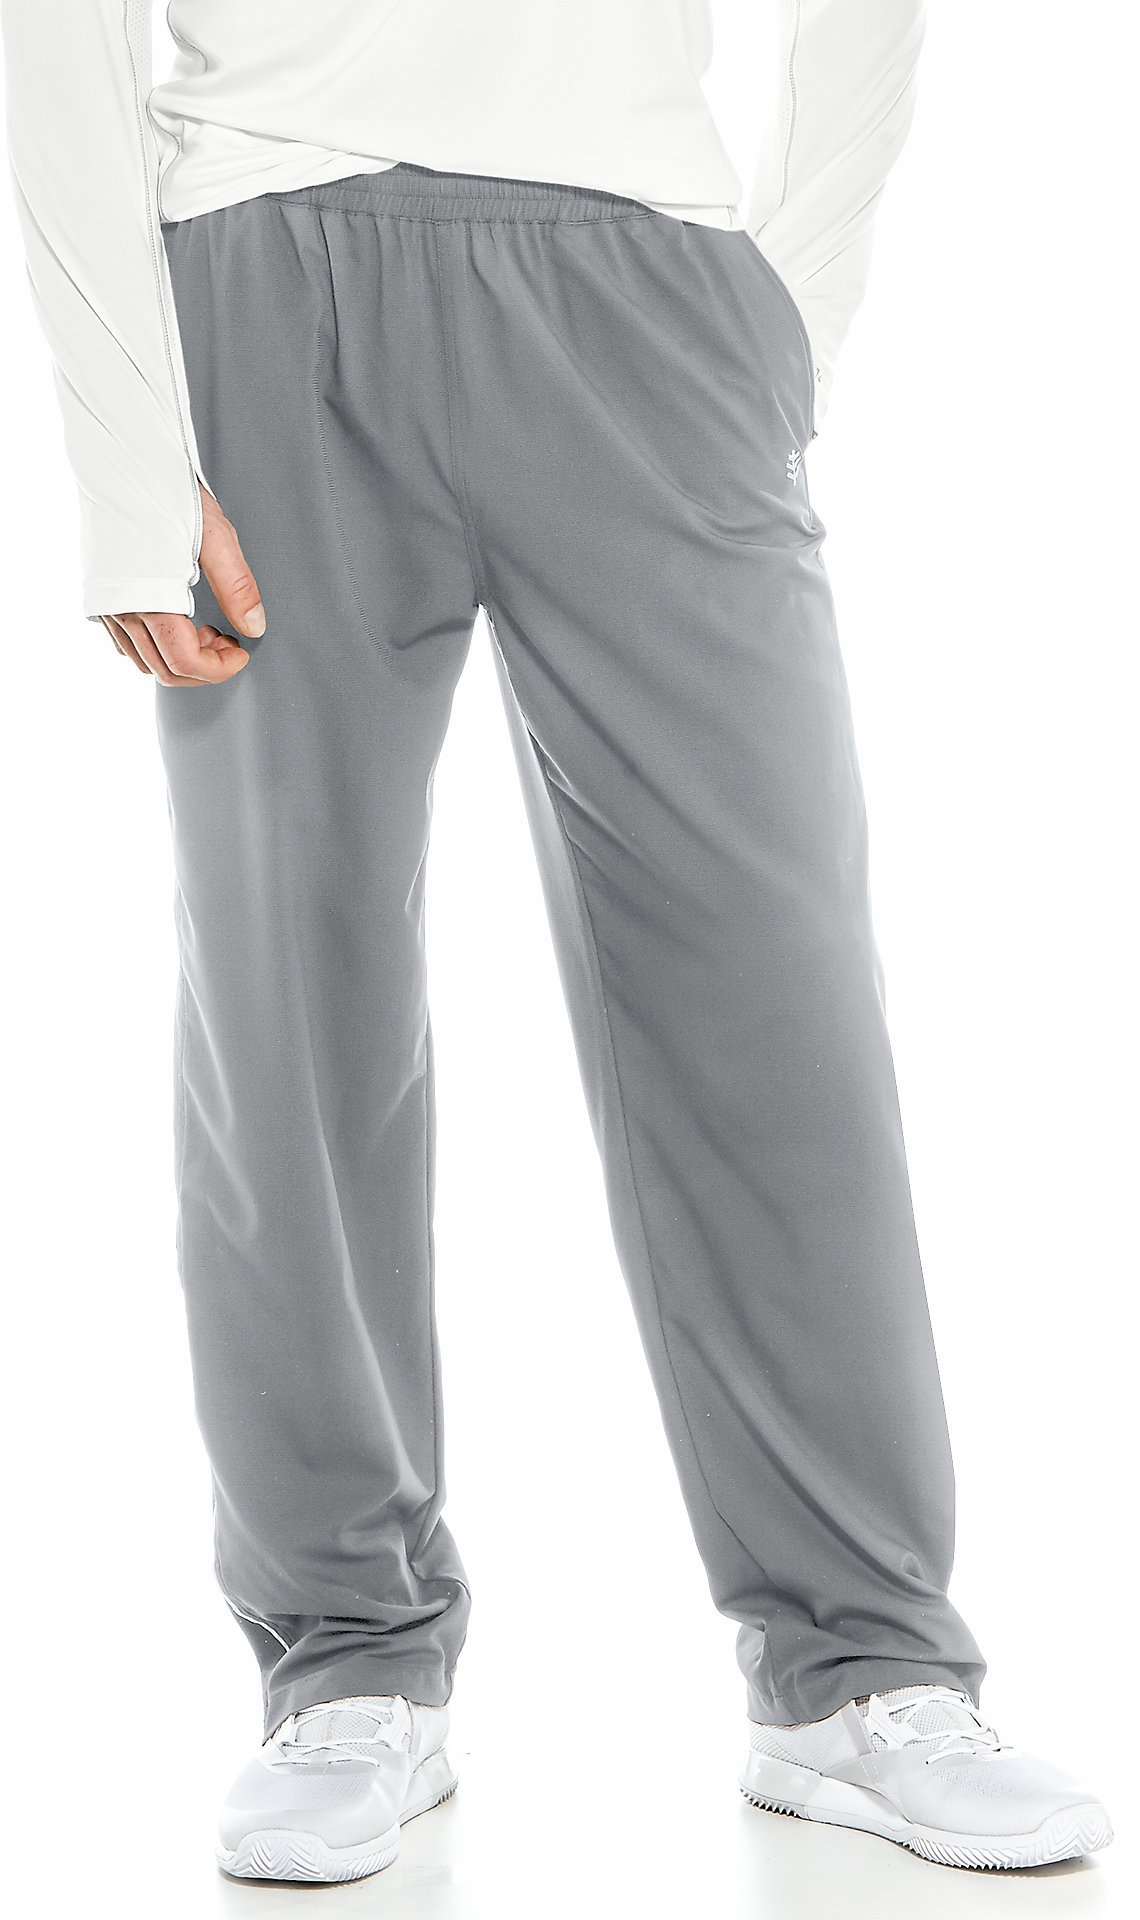 Coolibar UPF 50+ Men's Outpace Sport Pants - Sun Protective (Small- Iron)